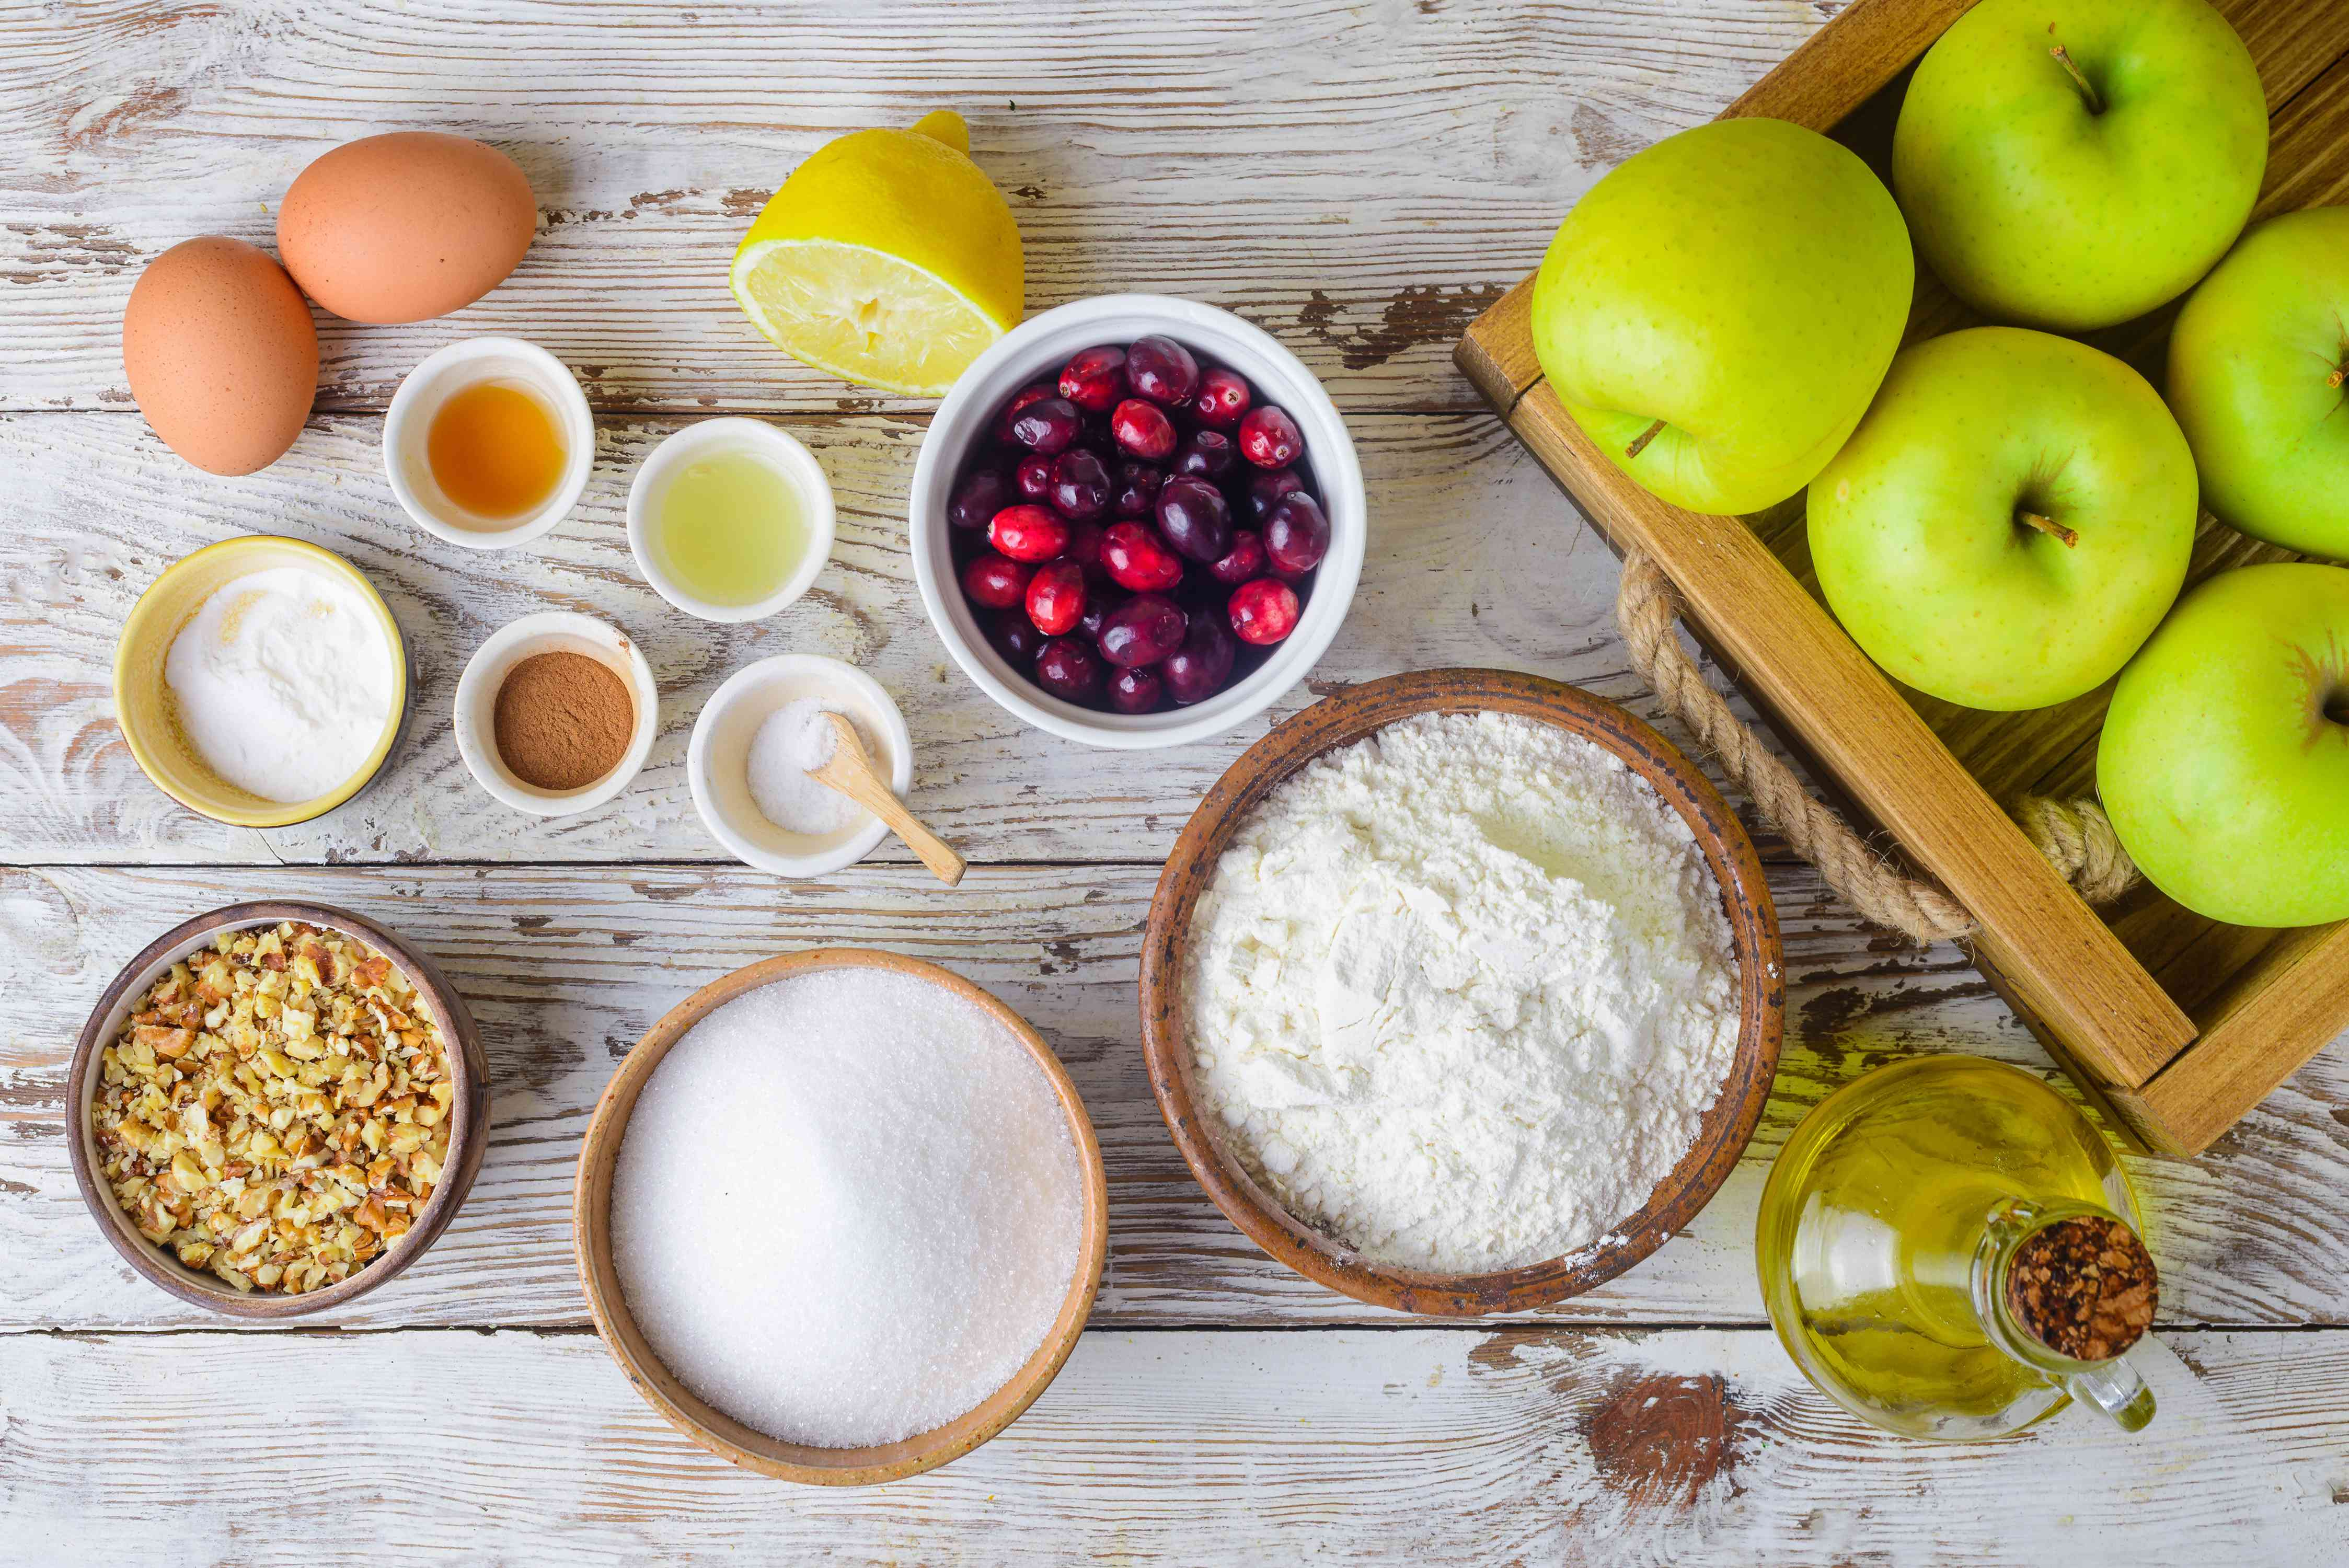 Ingredients for fresh apple cranberry cake